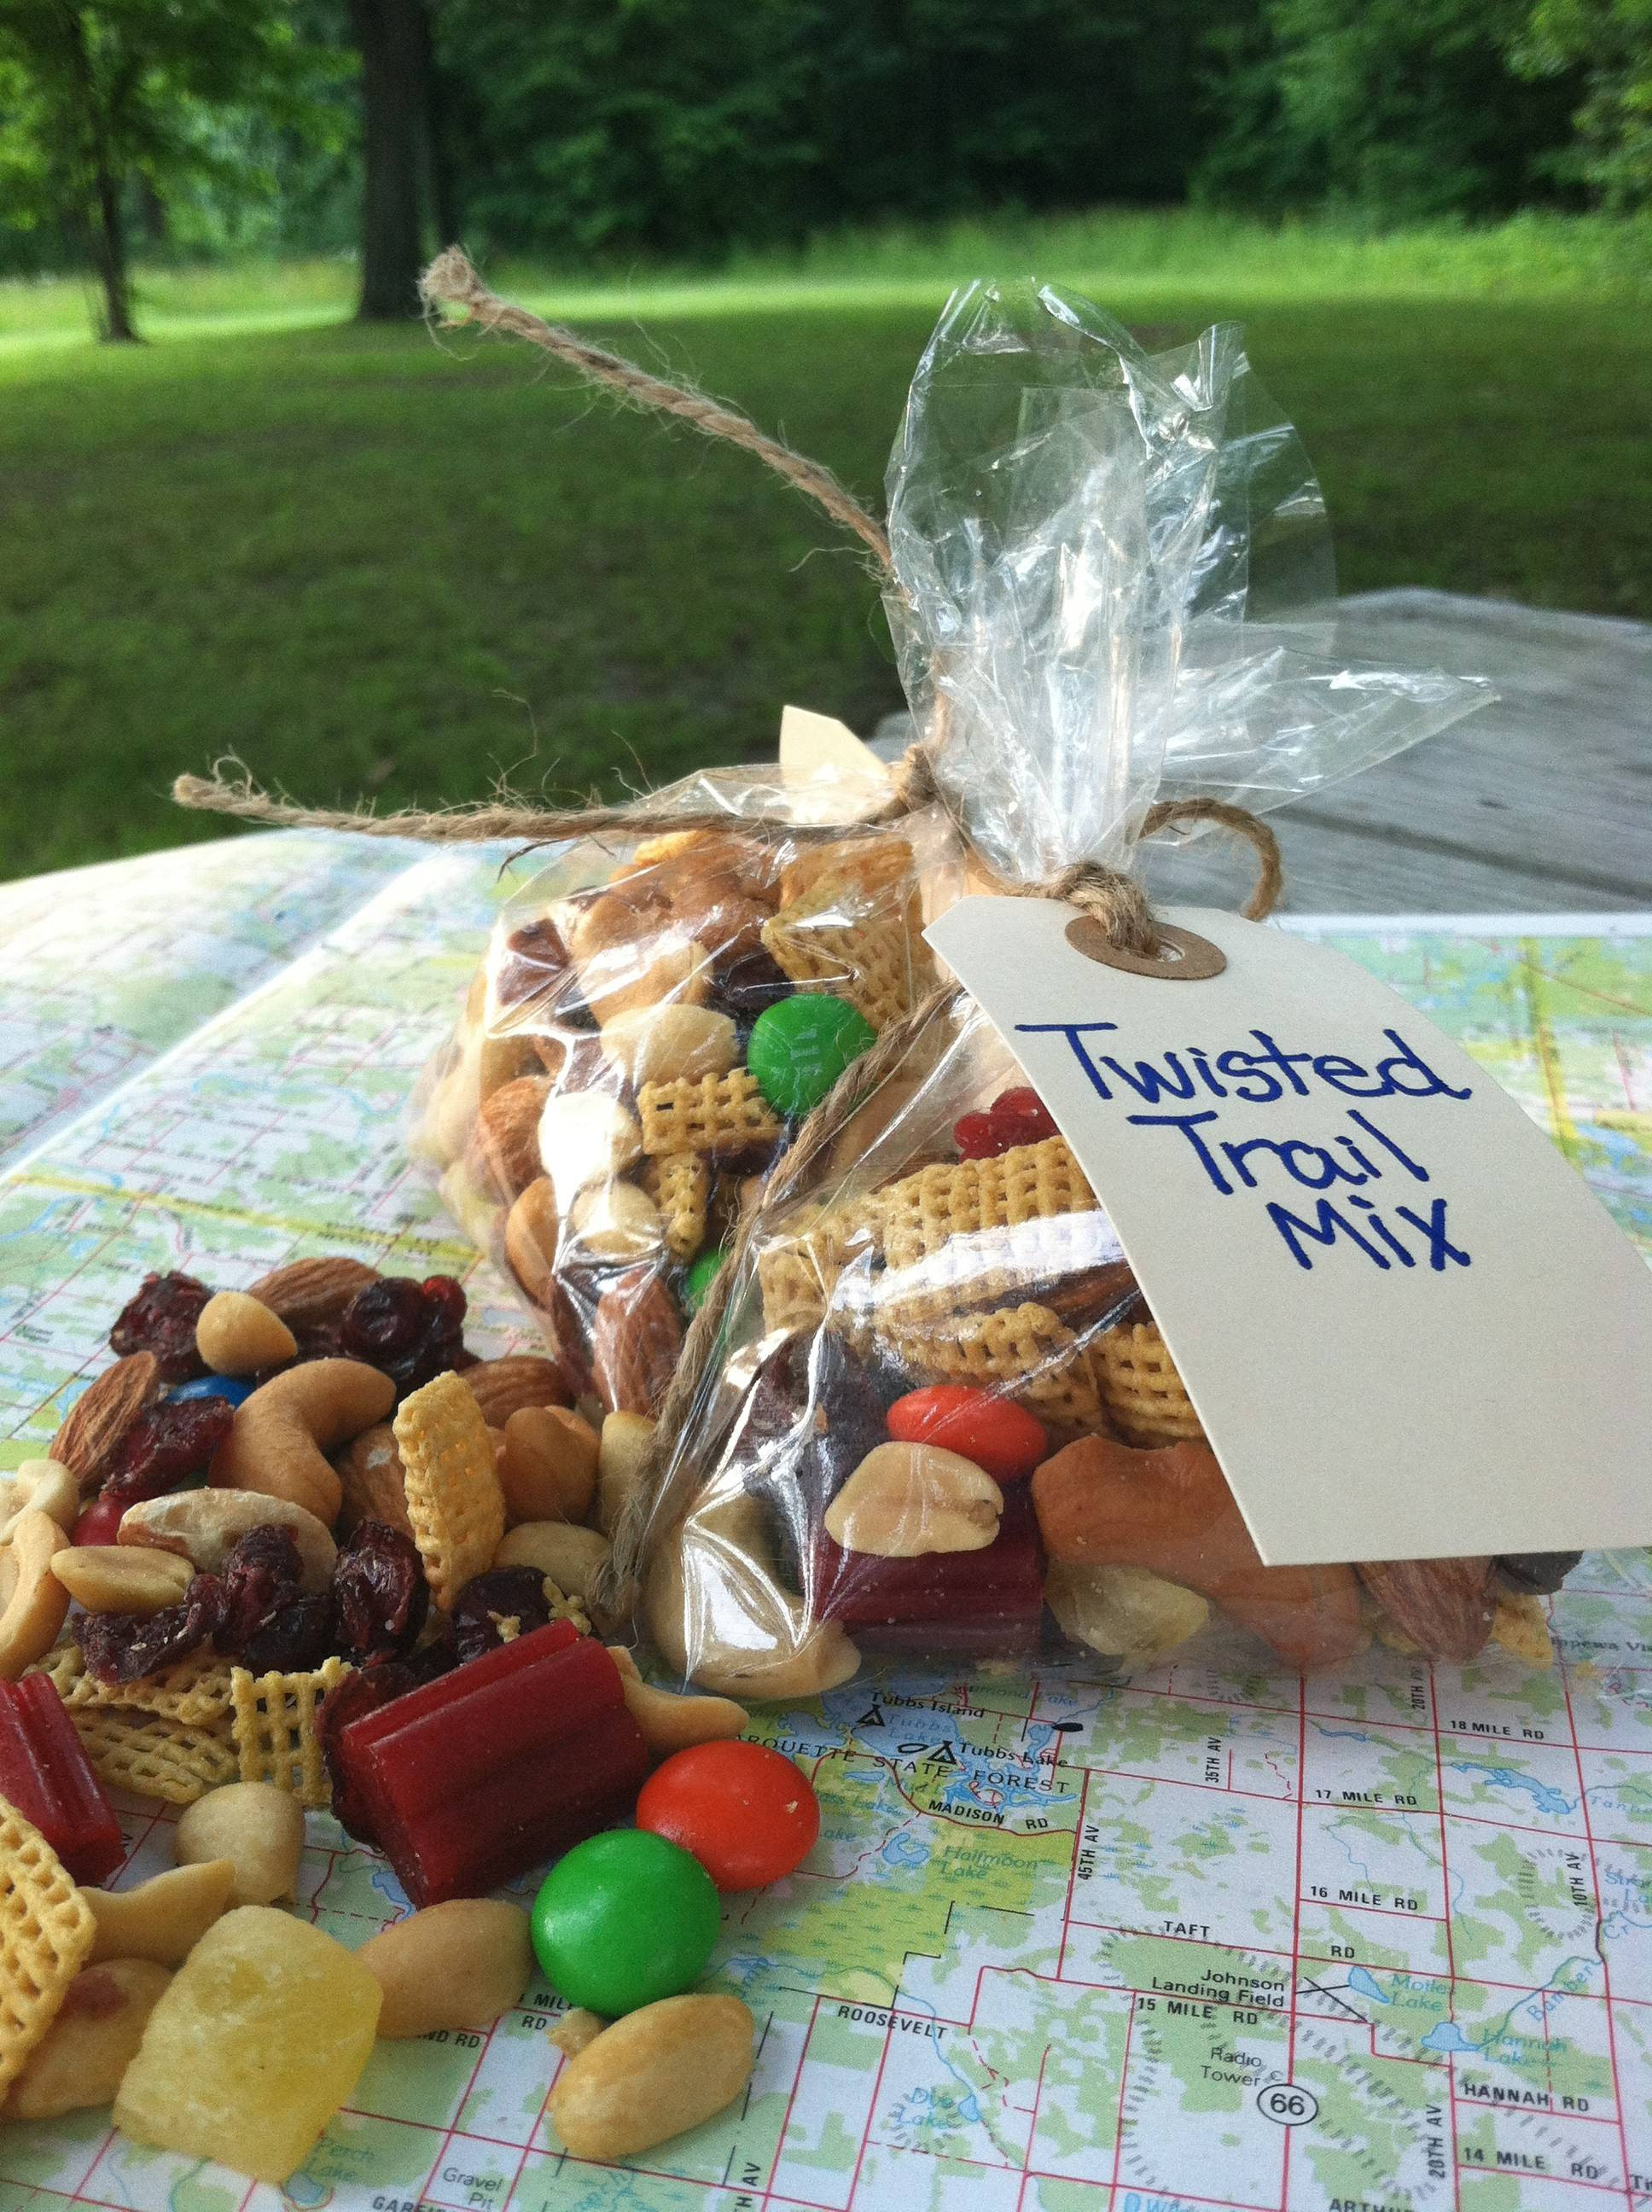 Move over Mom: Twisted Trail Mix a hit with high-energy kids